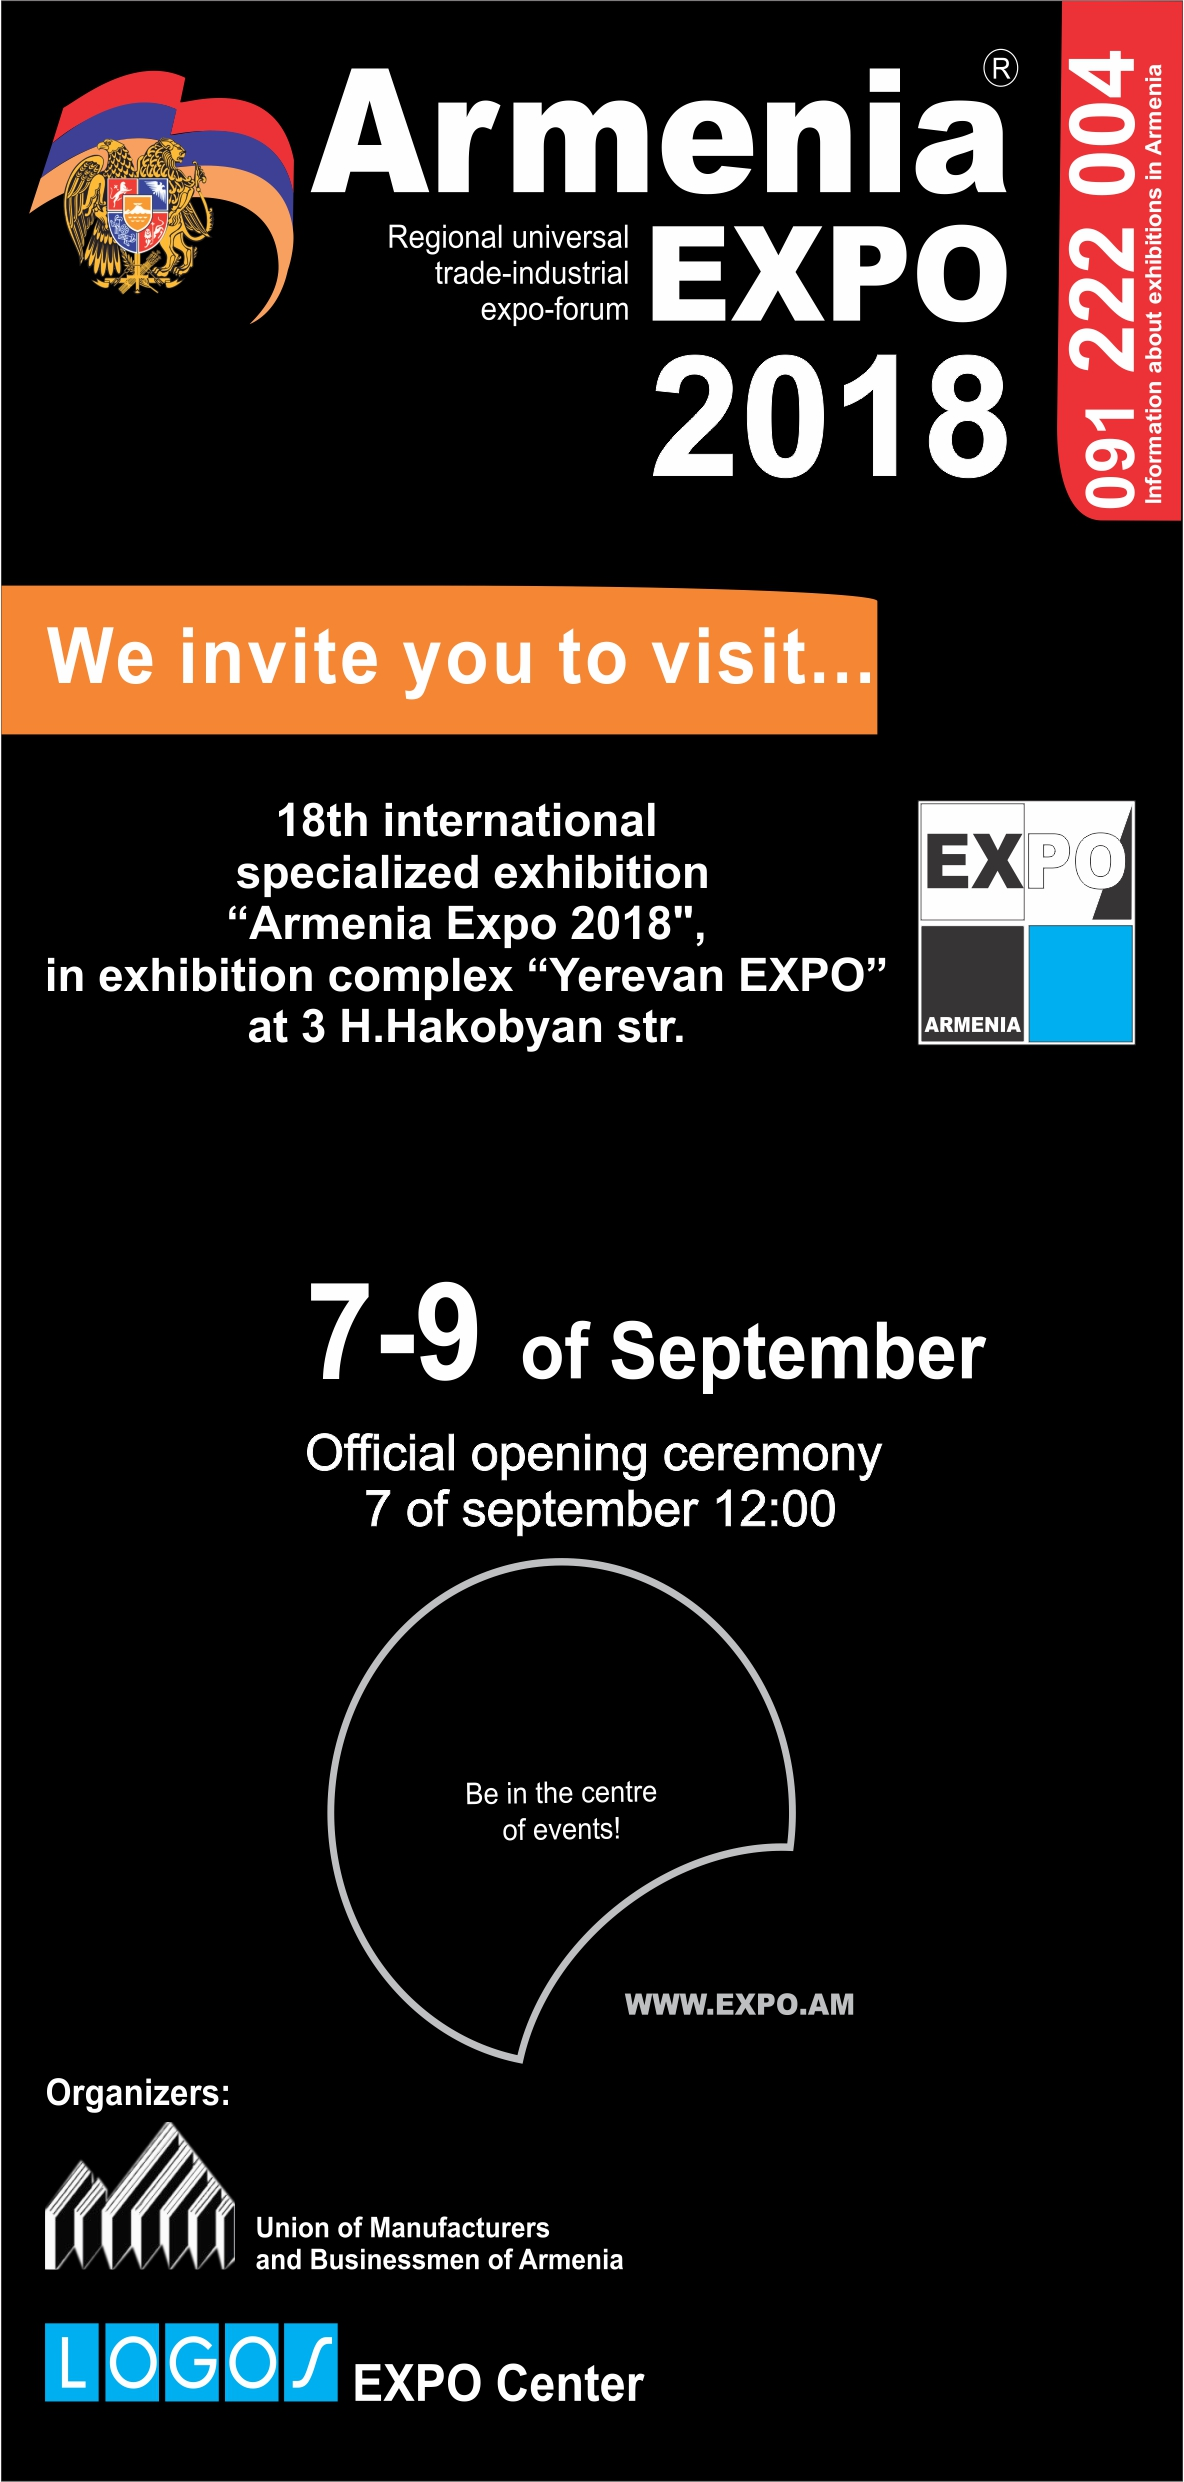 Armenia expo 2018 expo invitation card in the exhibition stopboris Images